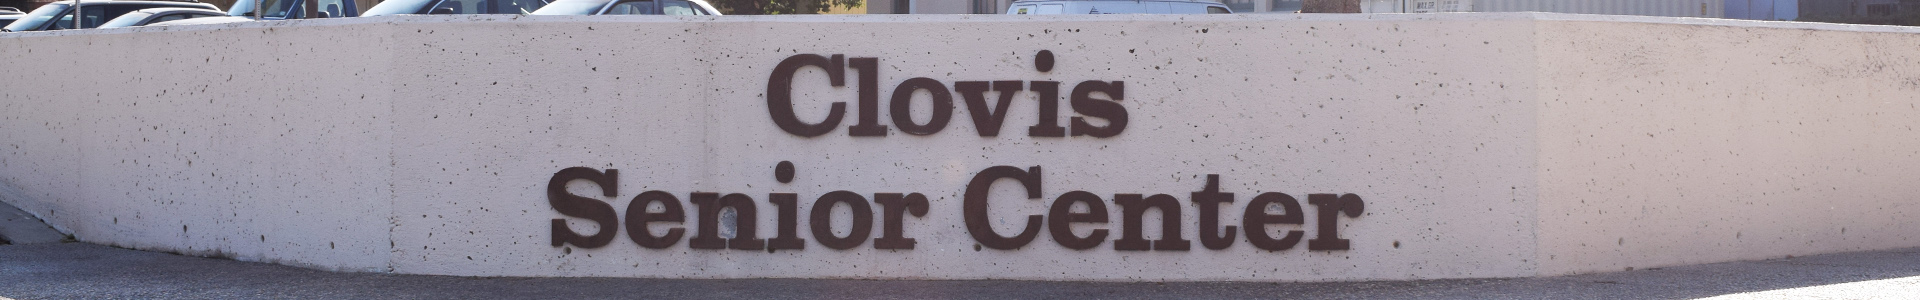 A picture of the Clovis Senior Center logo.